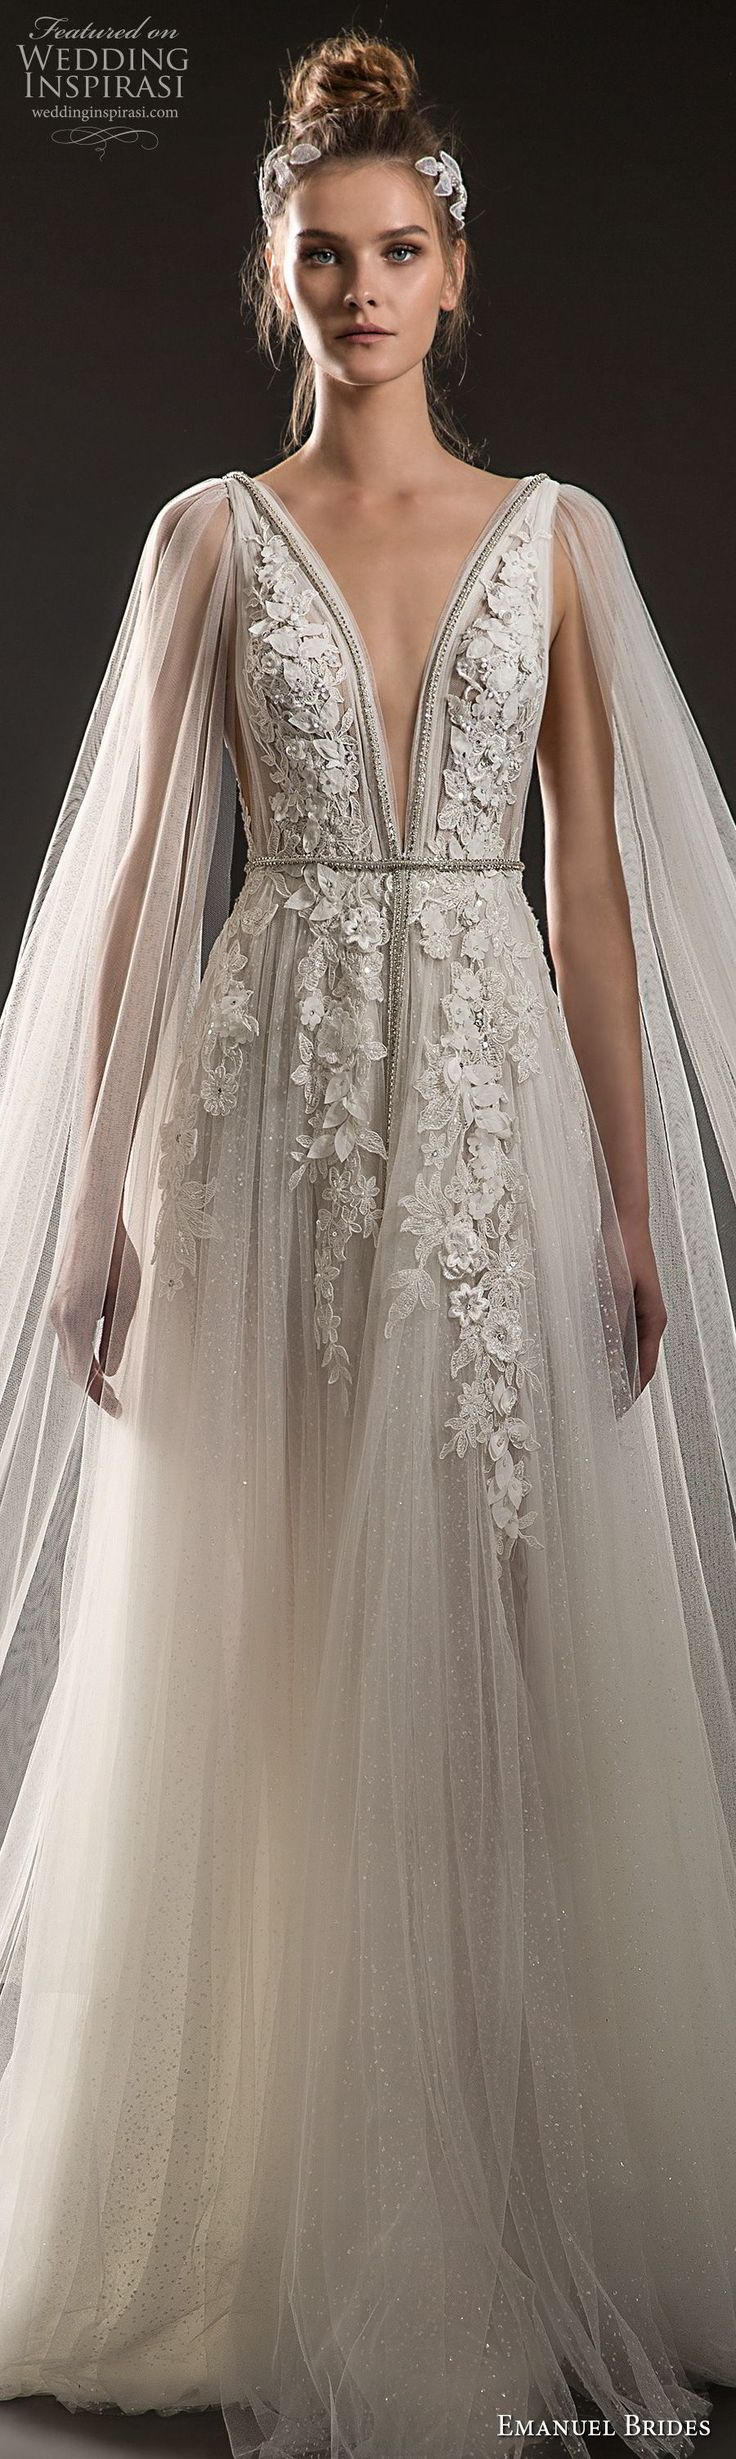 emanuel brides 2018 bridal sleeveless deep plunging v neck heavily embellished bodice elegant romantic soft a line wedding dress sheer cape open v back sweep train (08) lv